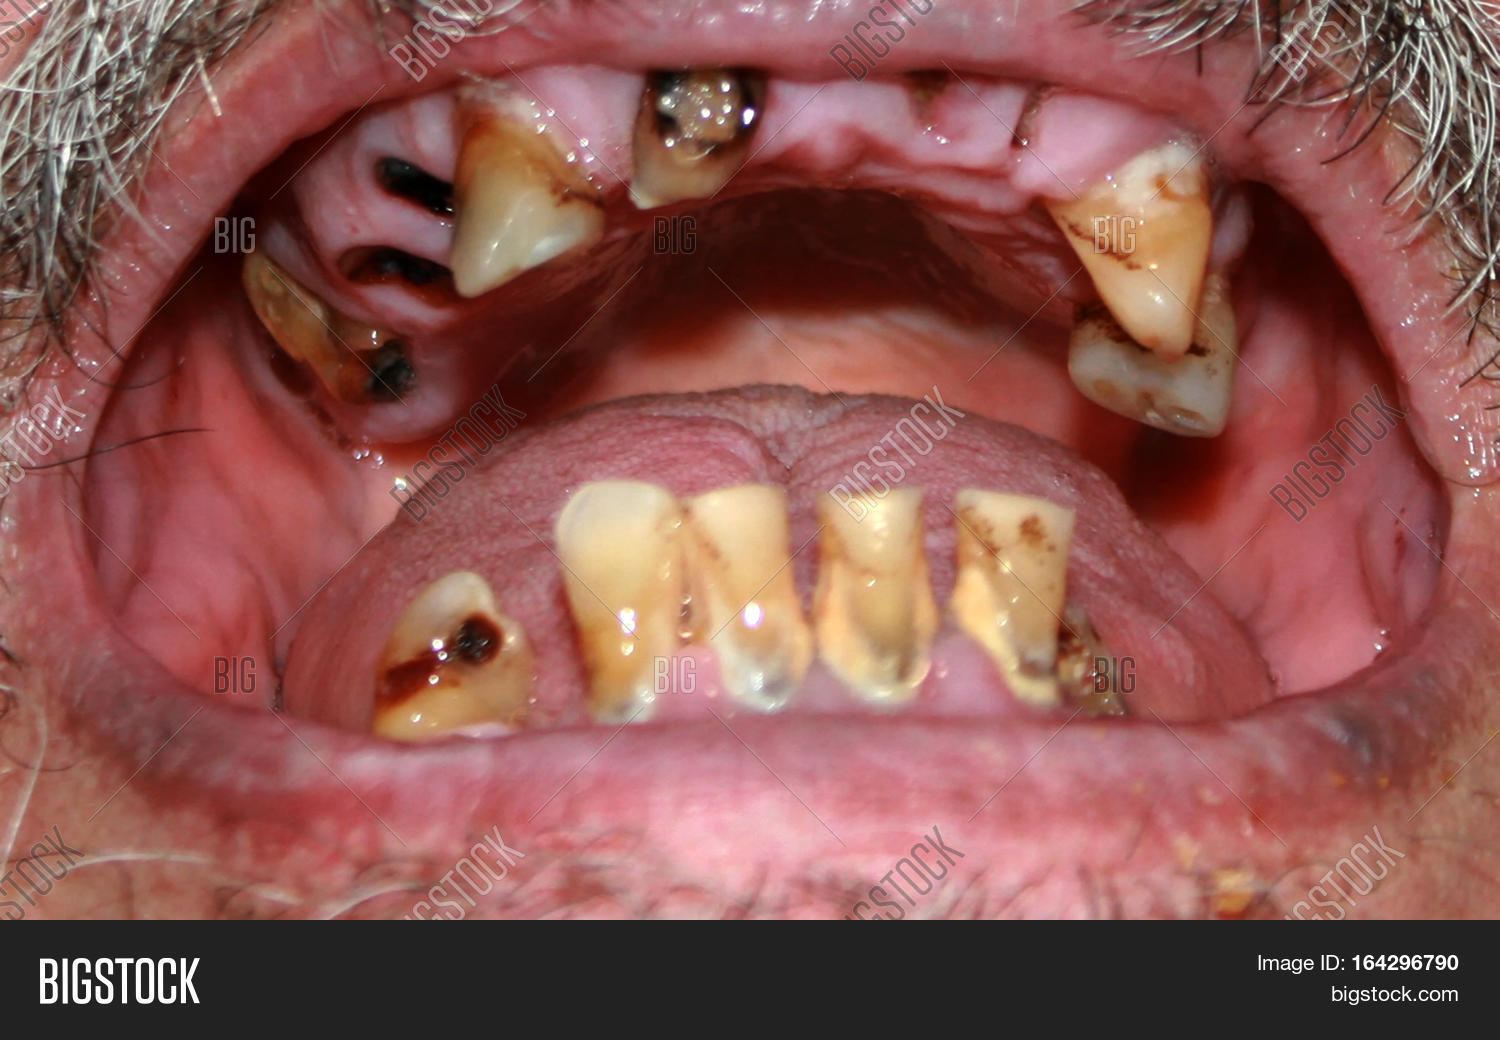 Rotten Bad Teeth. Image & Photo (Free Trial) | Bigstock